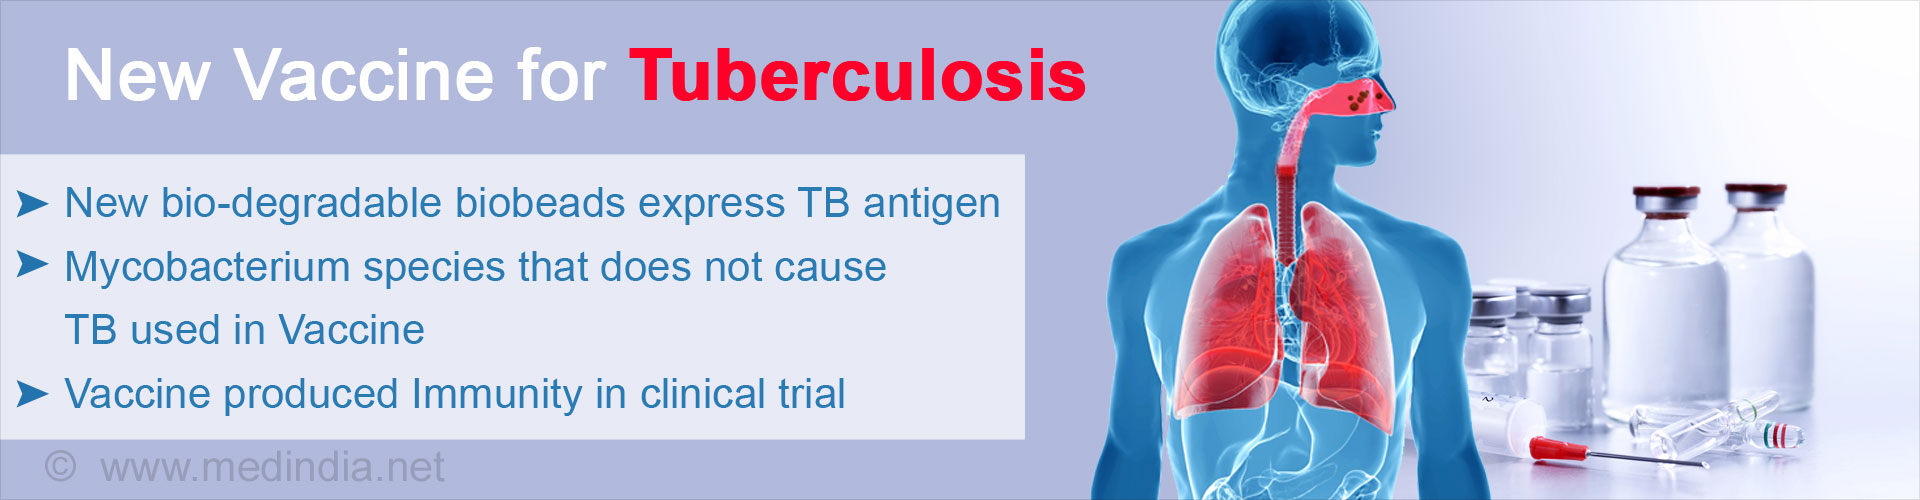 New Vaccine for Tuberculosis Holds Promise of Protection